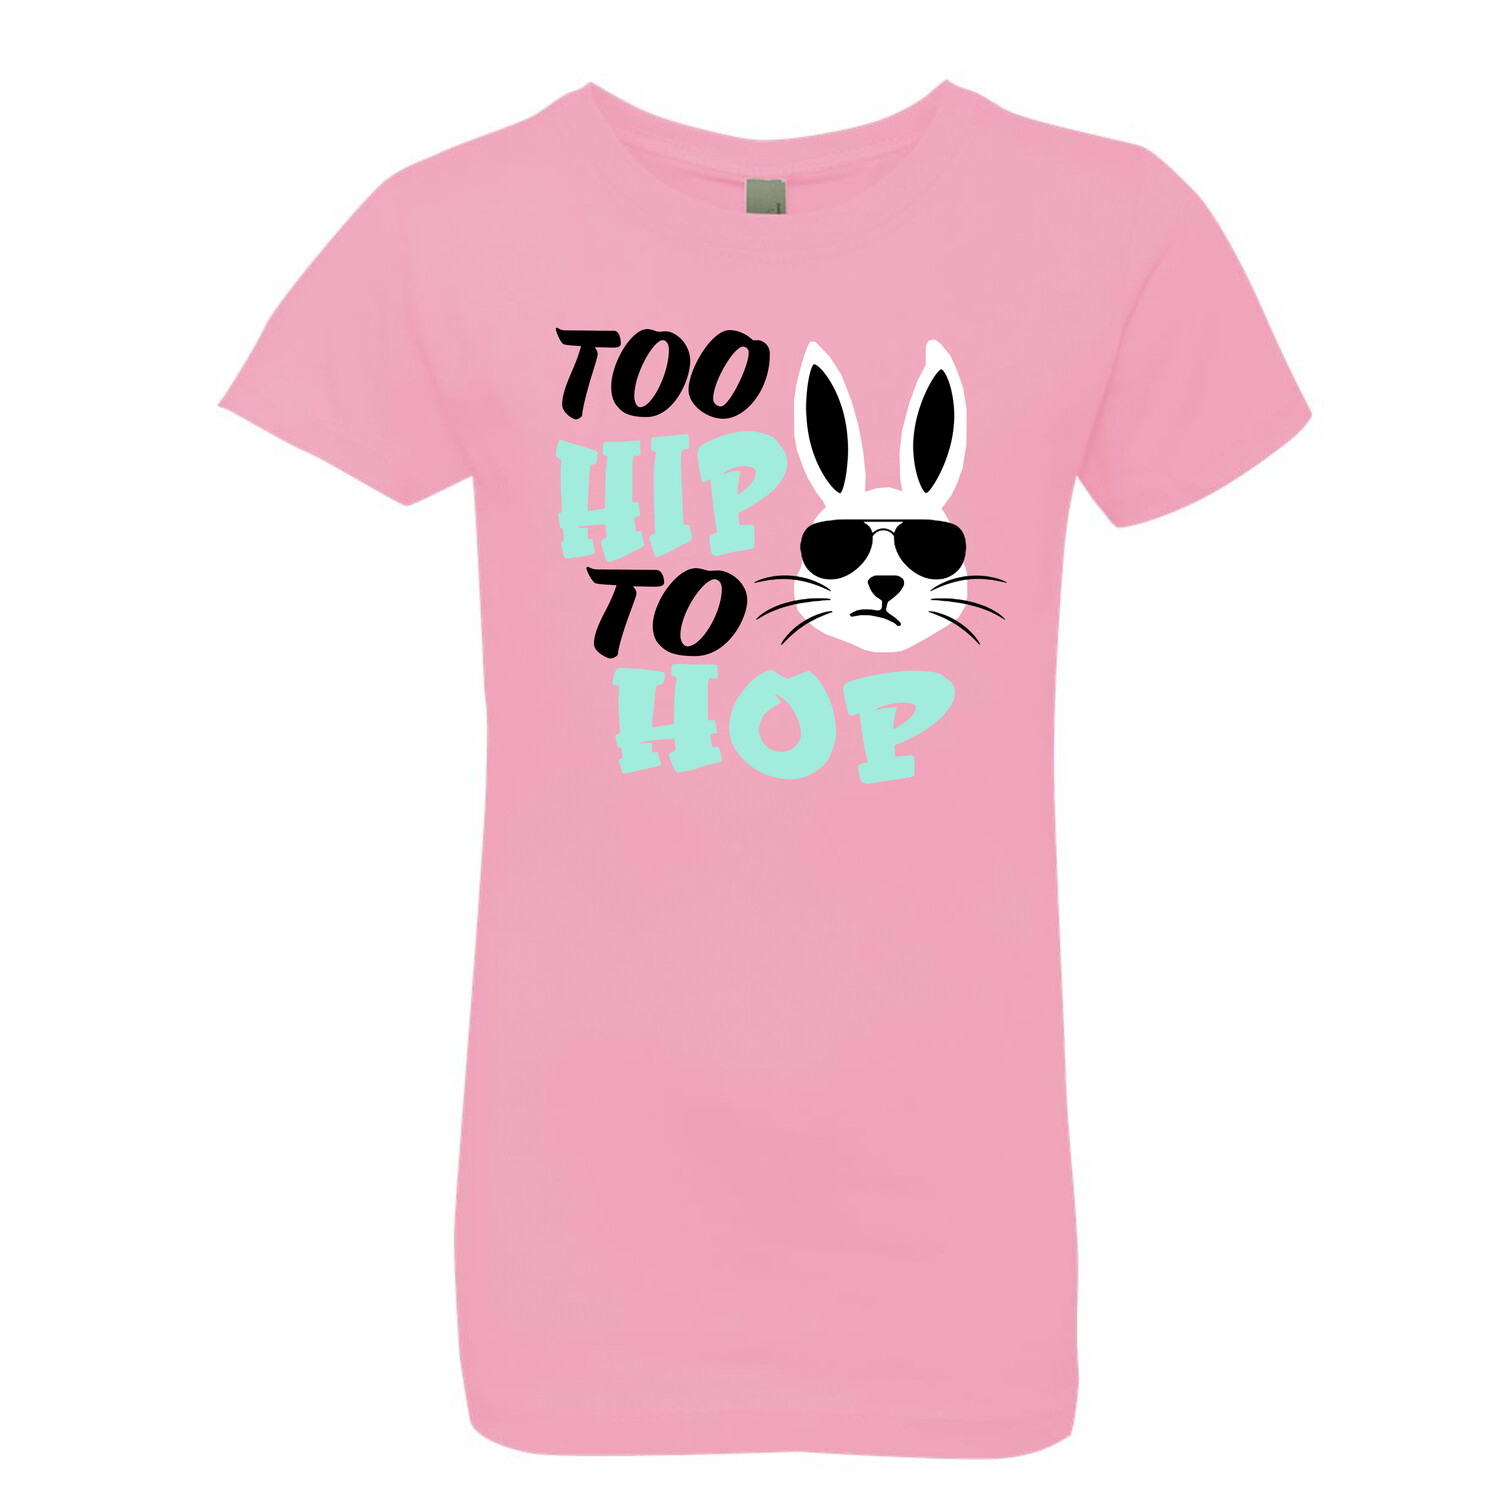 Too Hip To Hop Graphic Tee